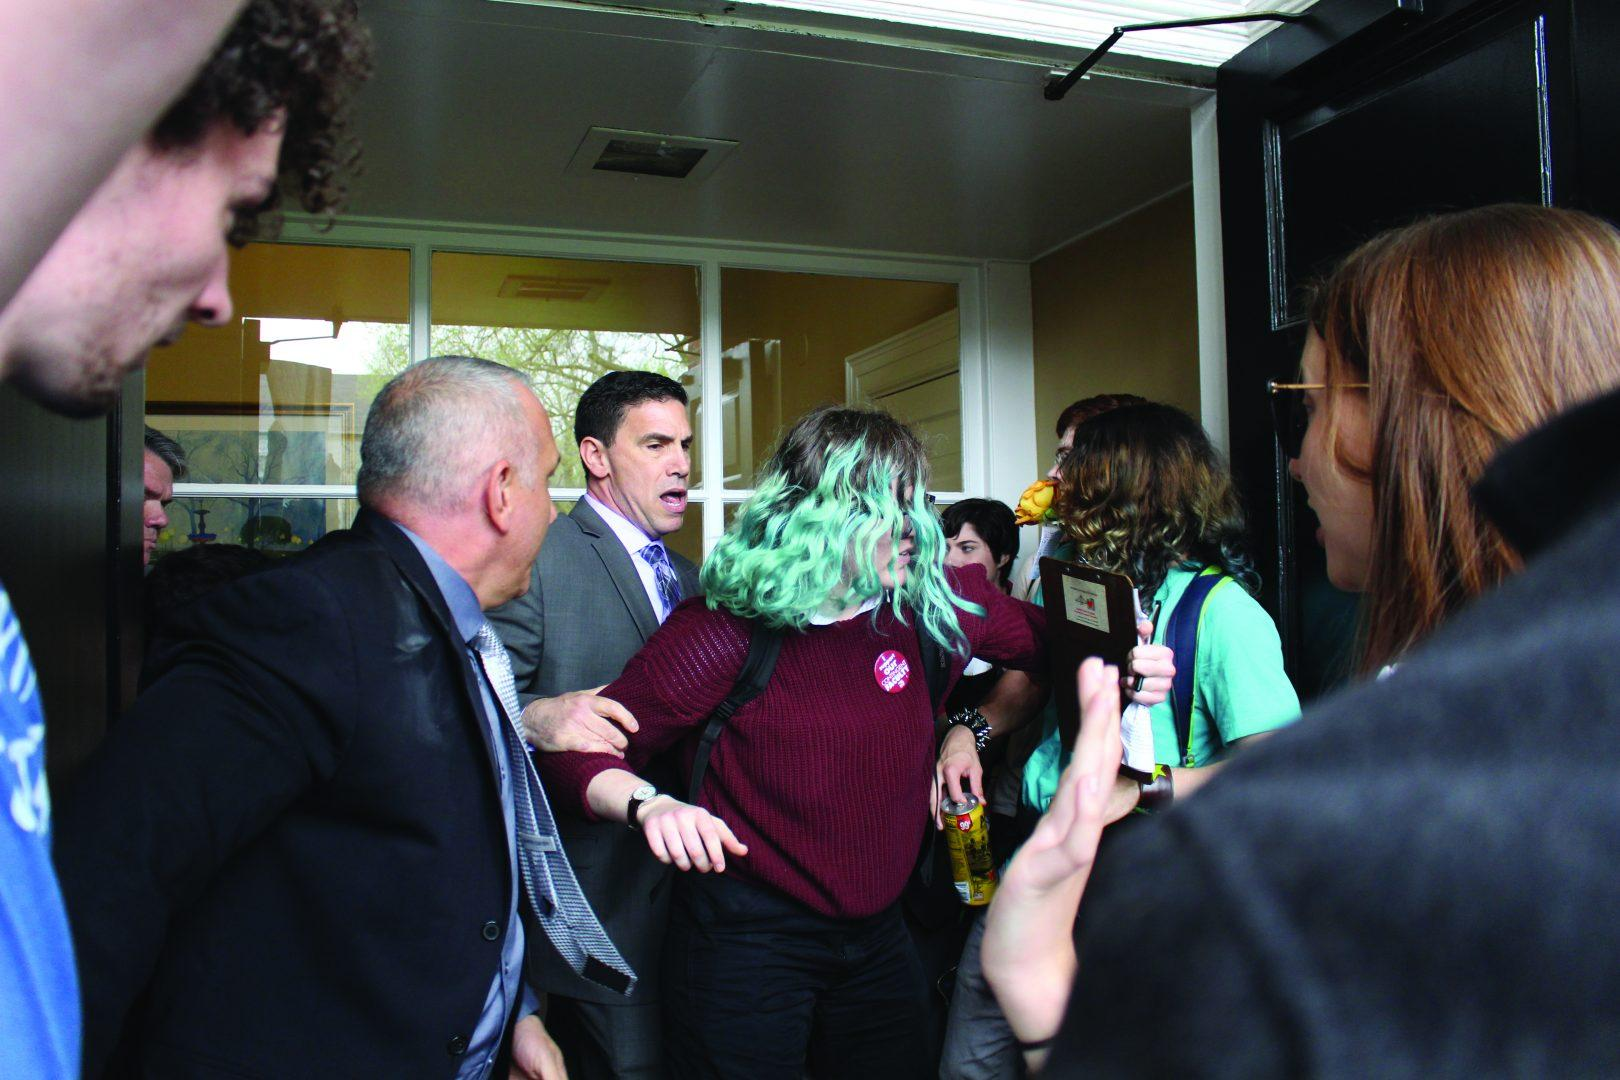 Student protester Sapphira Lurie, FCLC '17, is blocked from entering a door by Public Safety supervisors at Cunniffe House at Fordham Rose Hill. (GEORGE HORIHAN/The Observer)